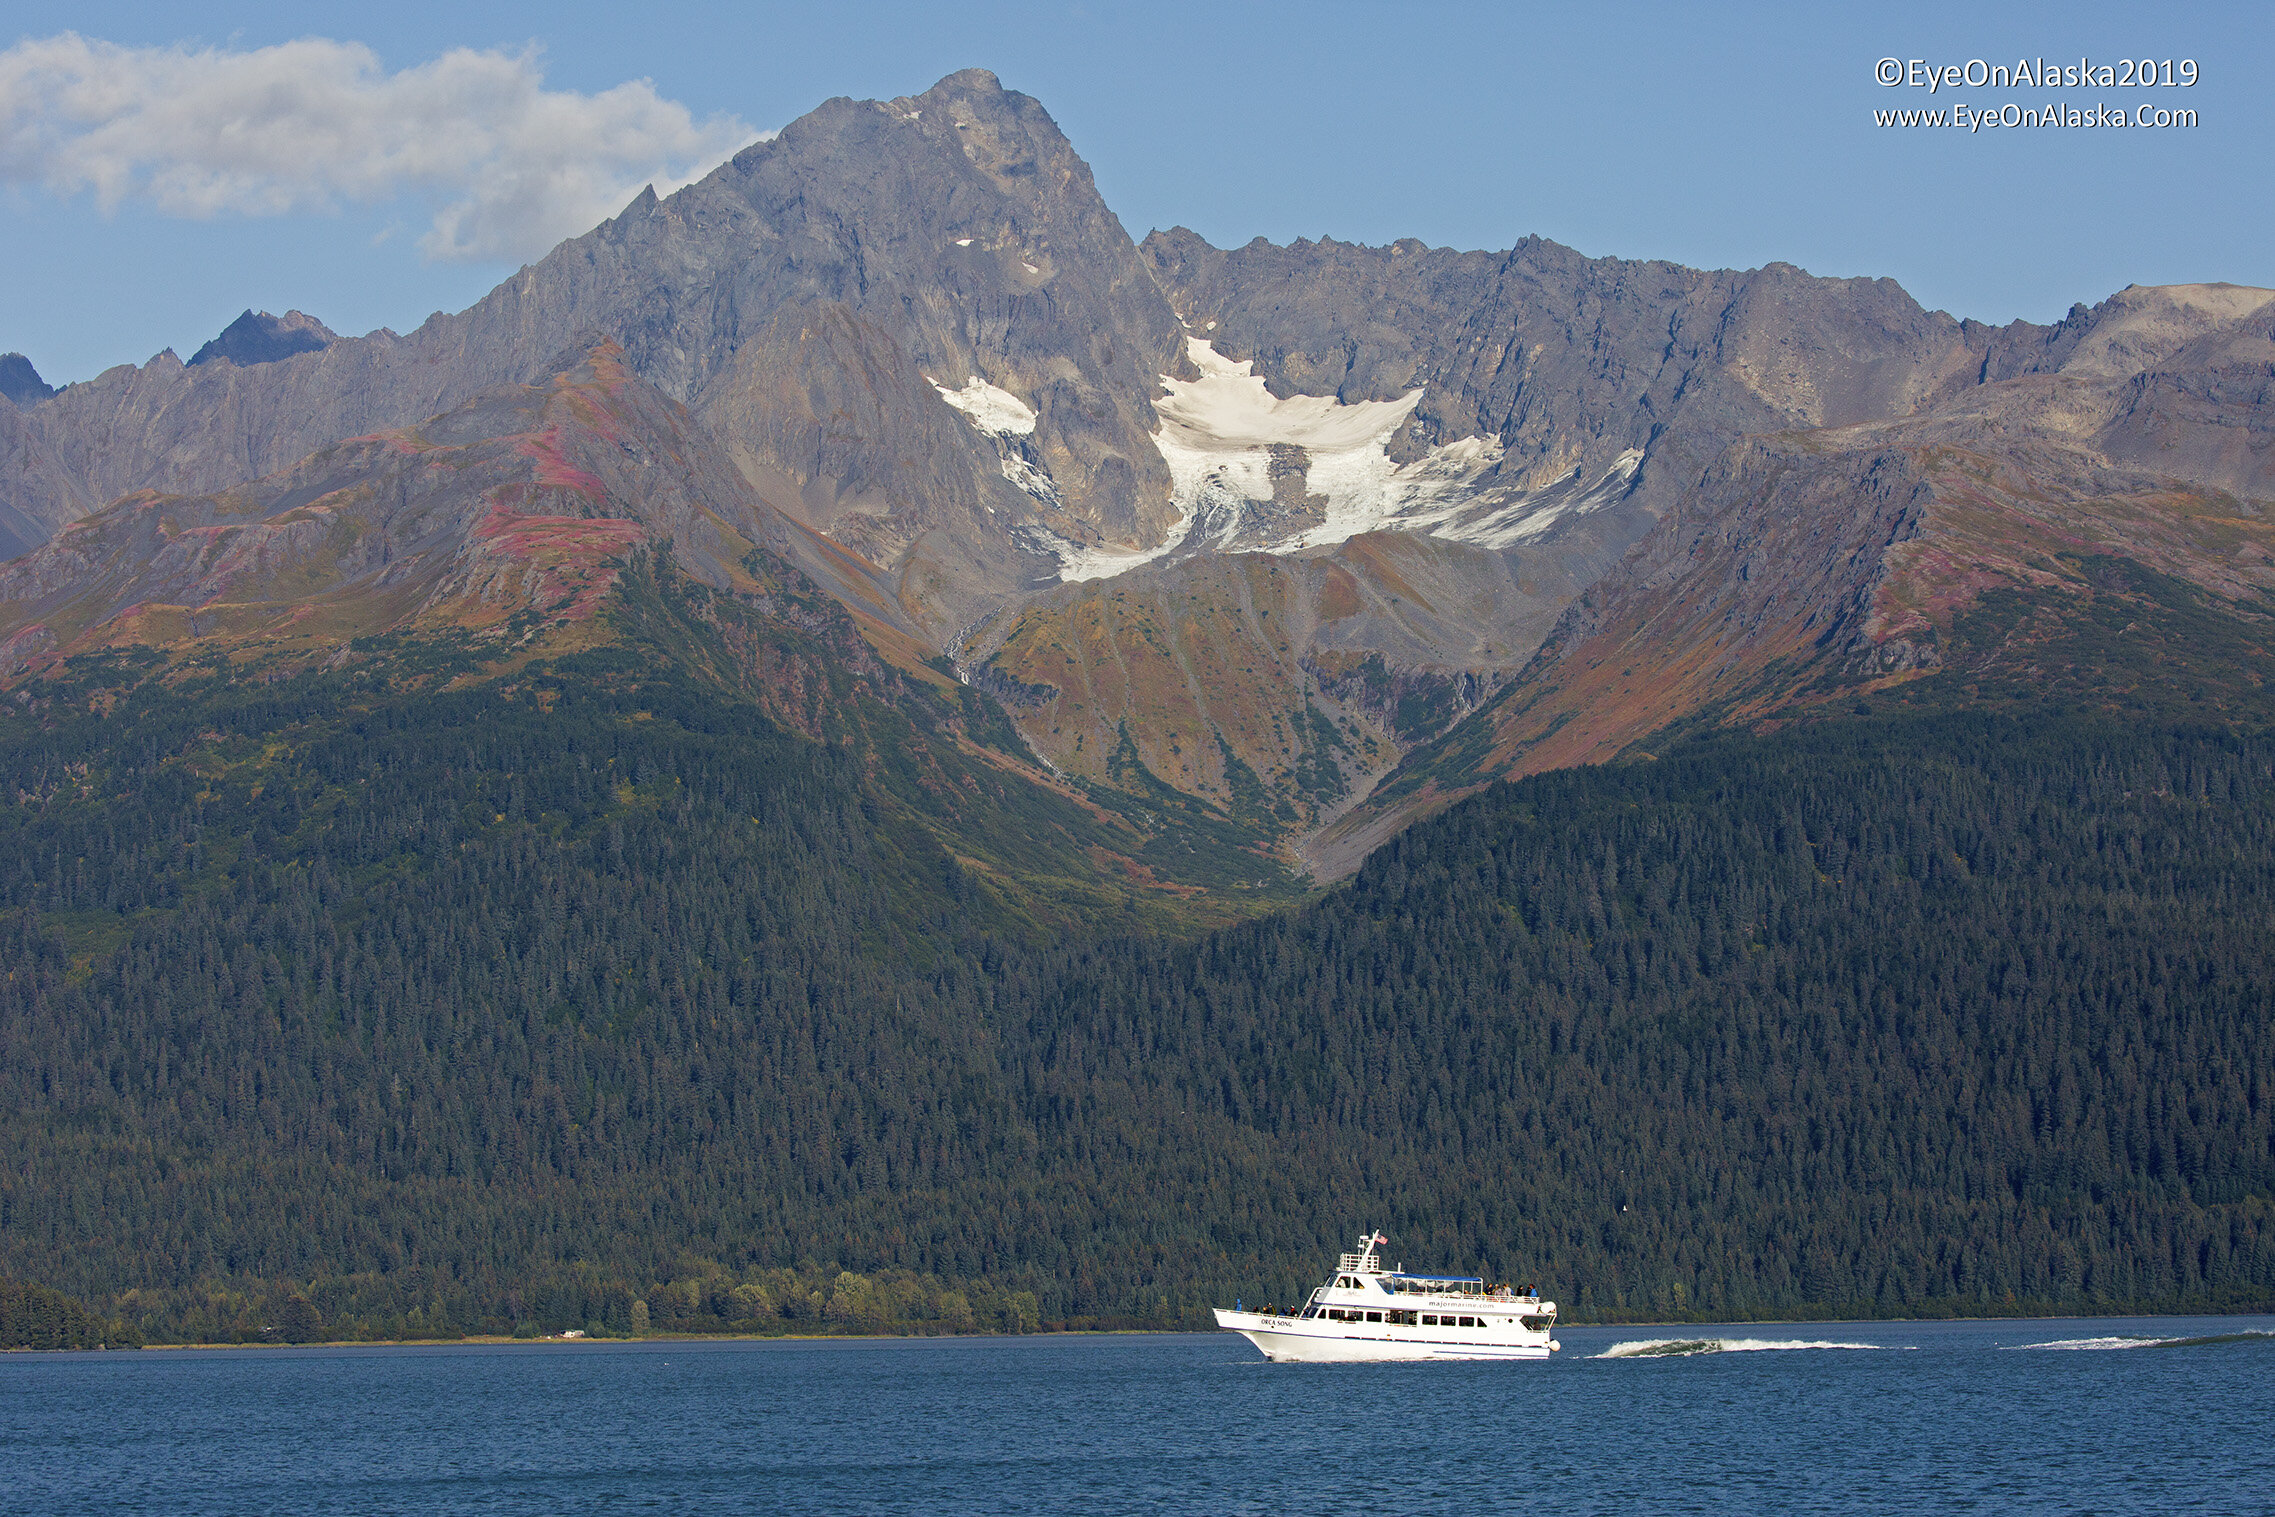 Gorgeous fall colors on the mountains across Resurrection Bay.